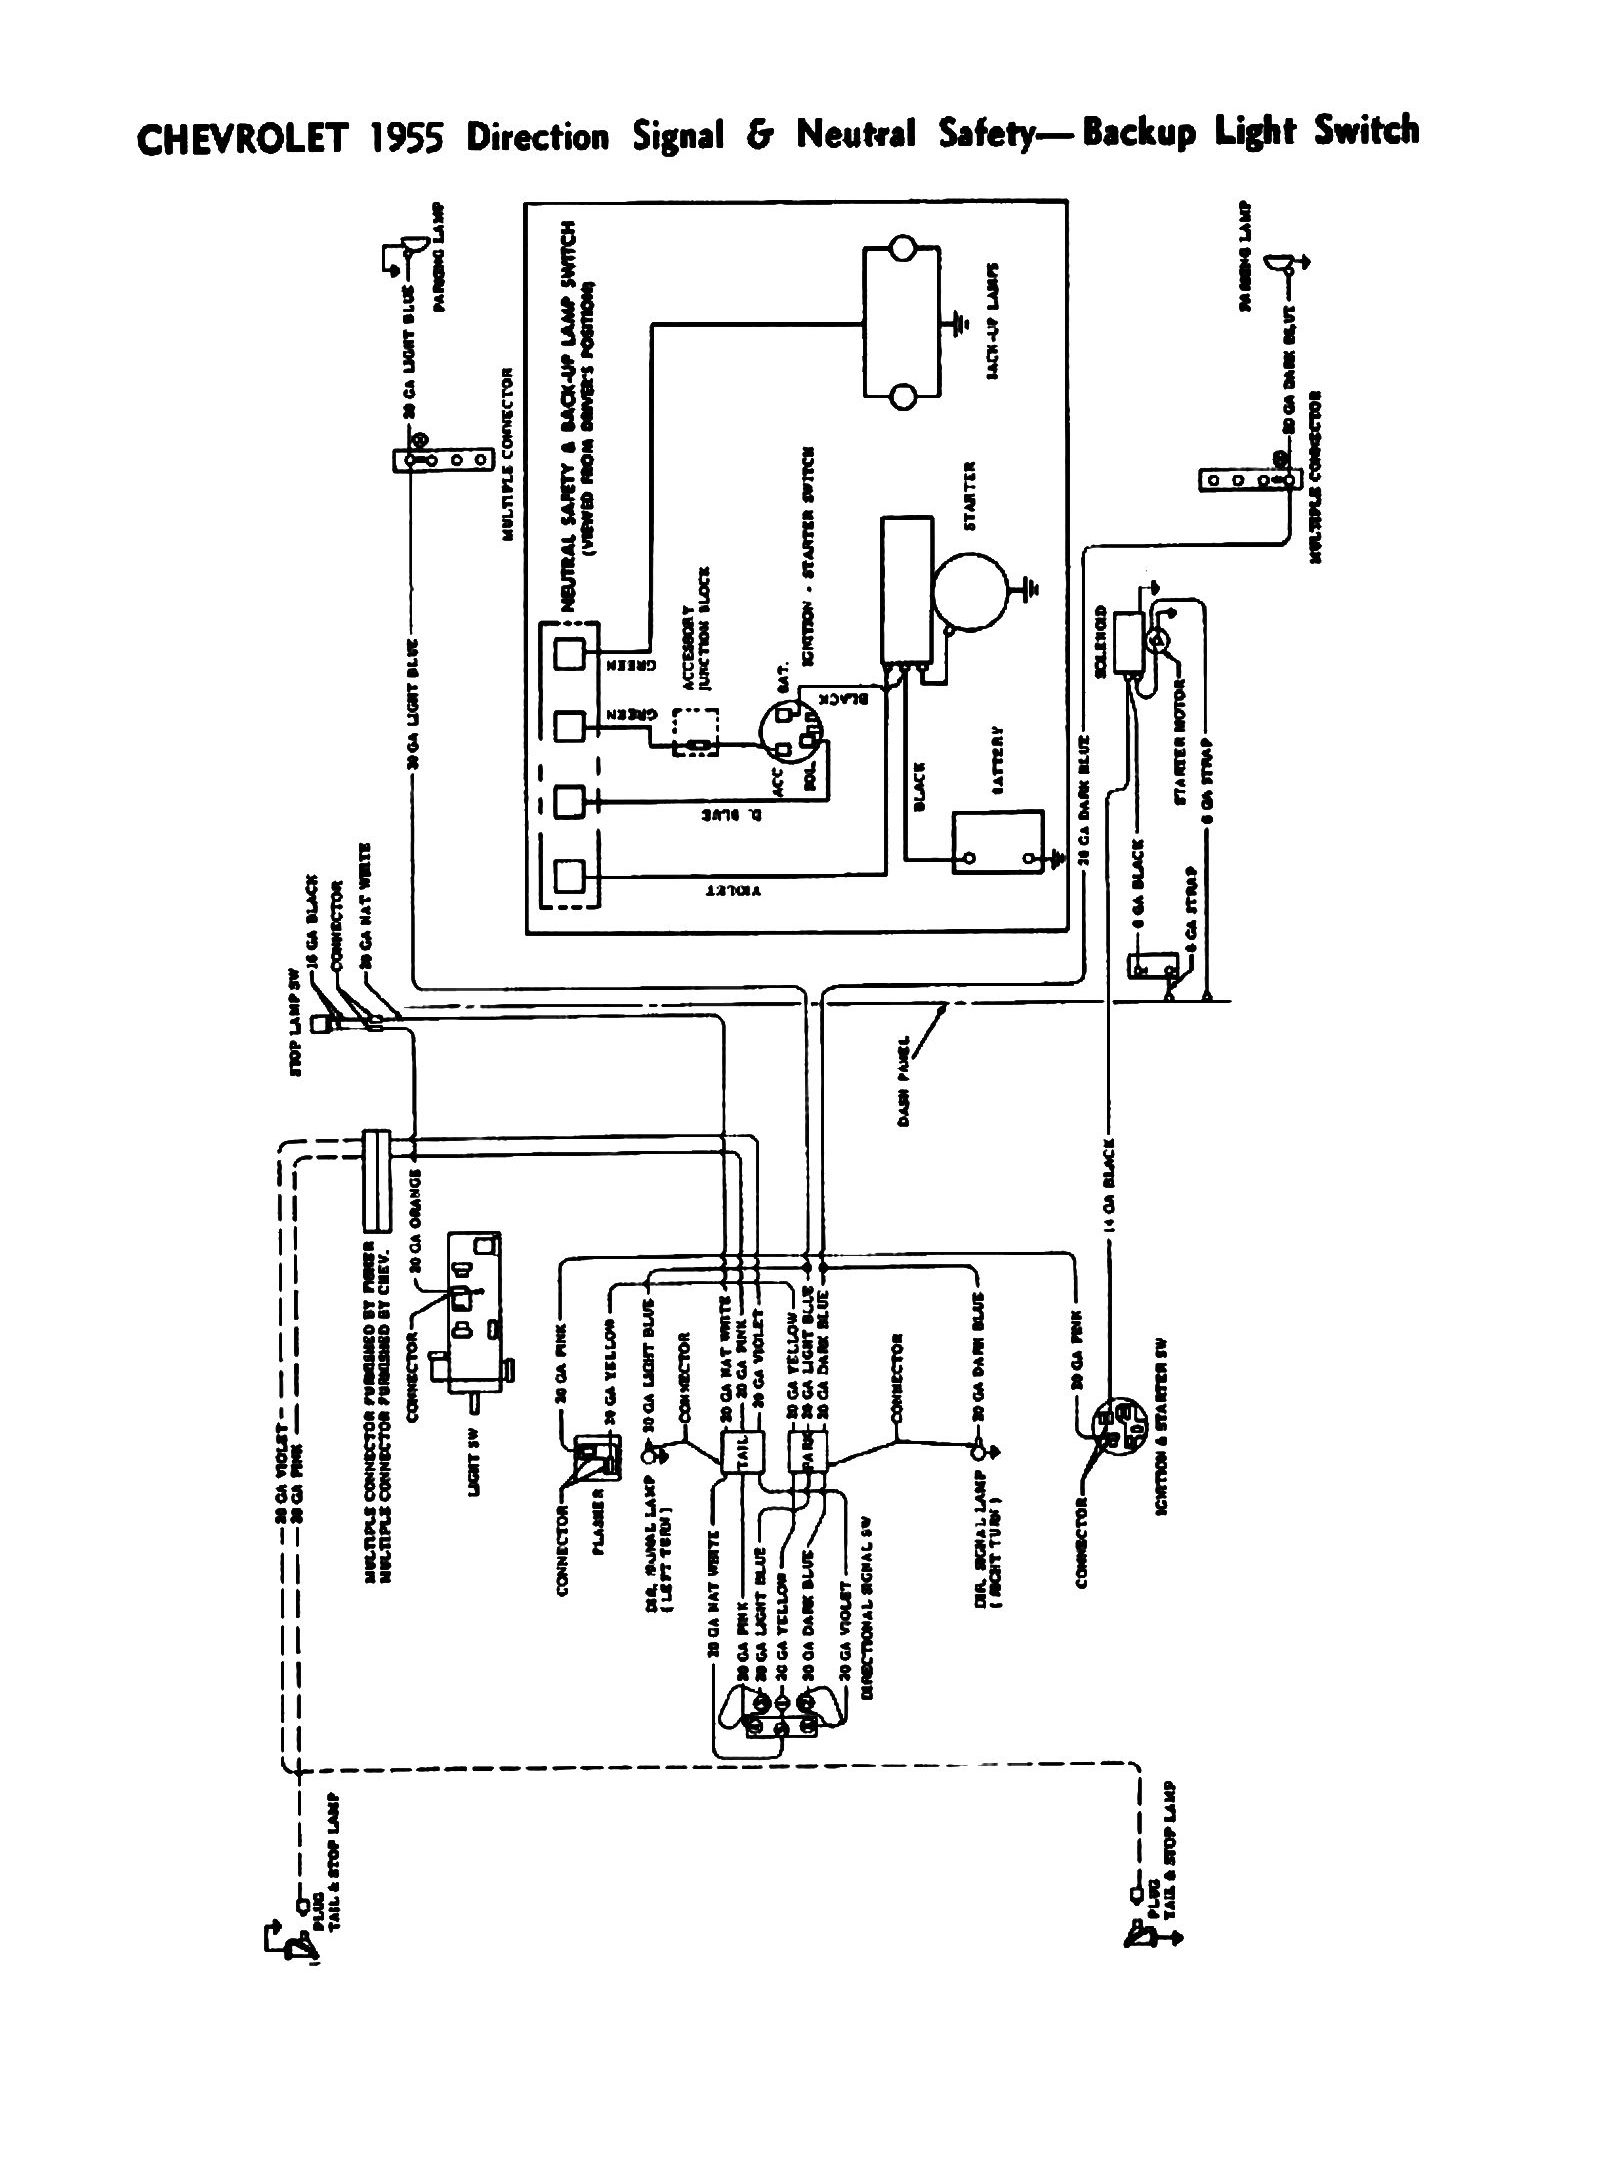 55 Chevy Turn Signal Wiring on 1959 chevrolet impala wiring diagram